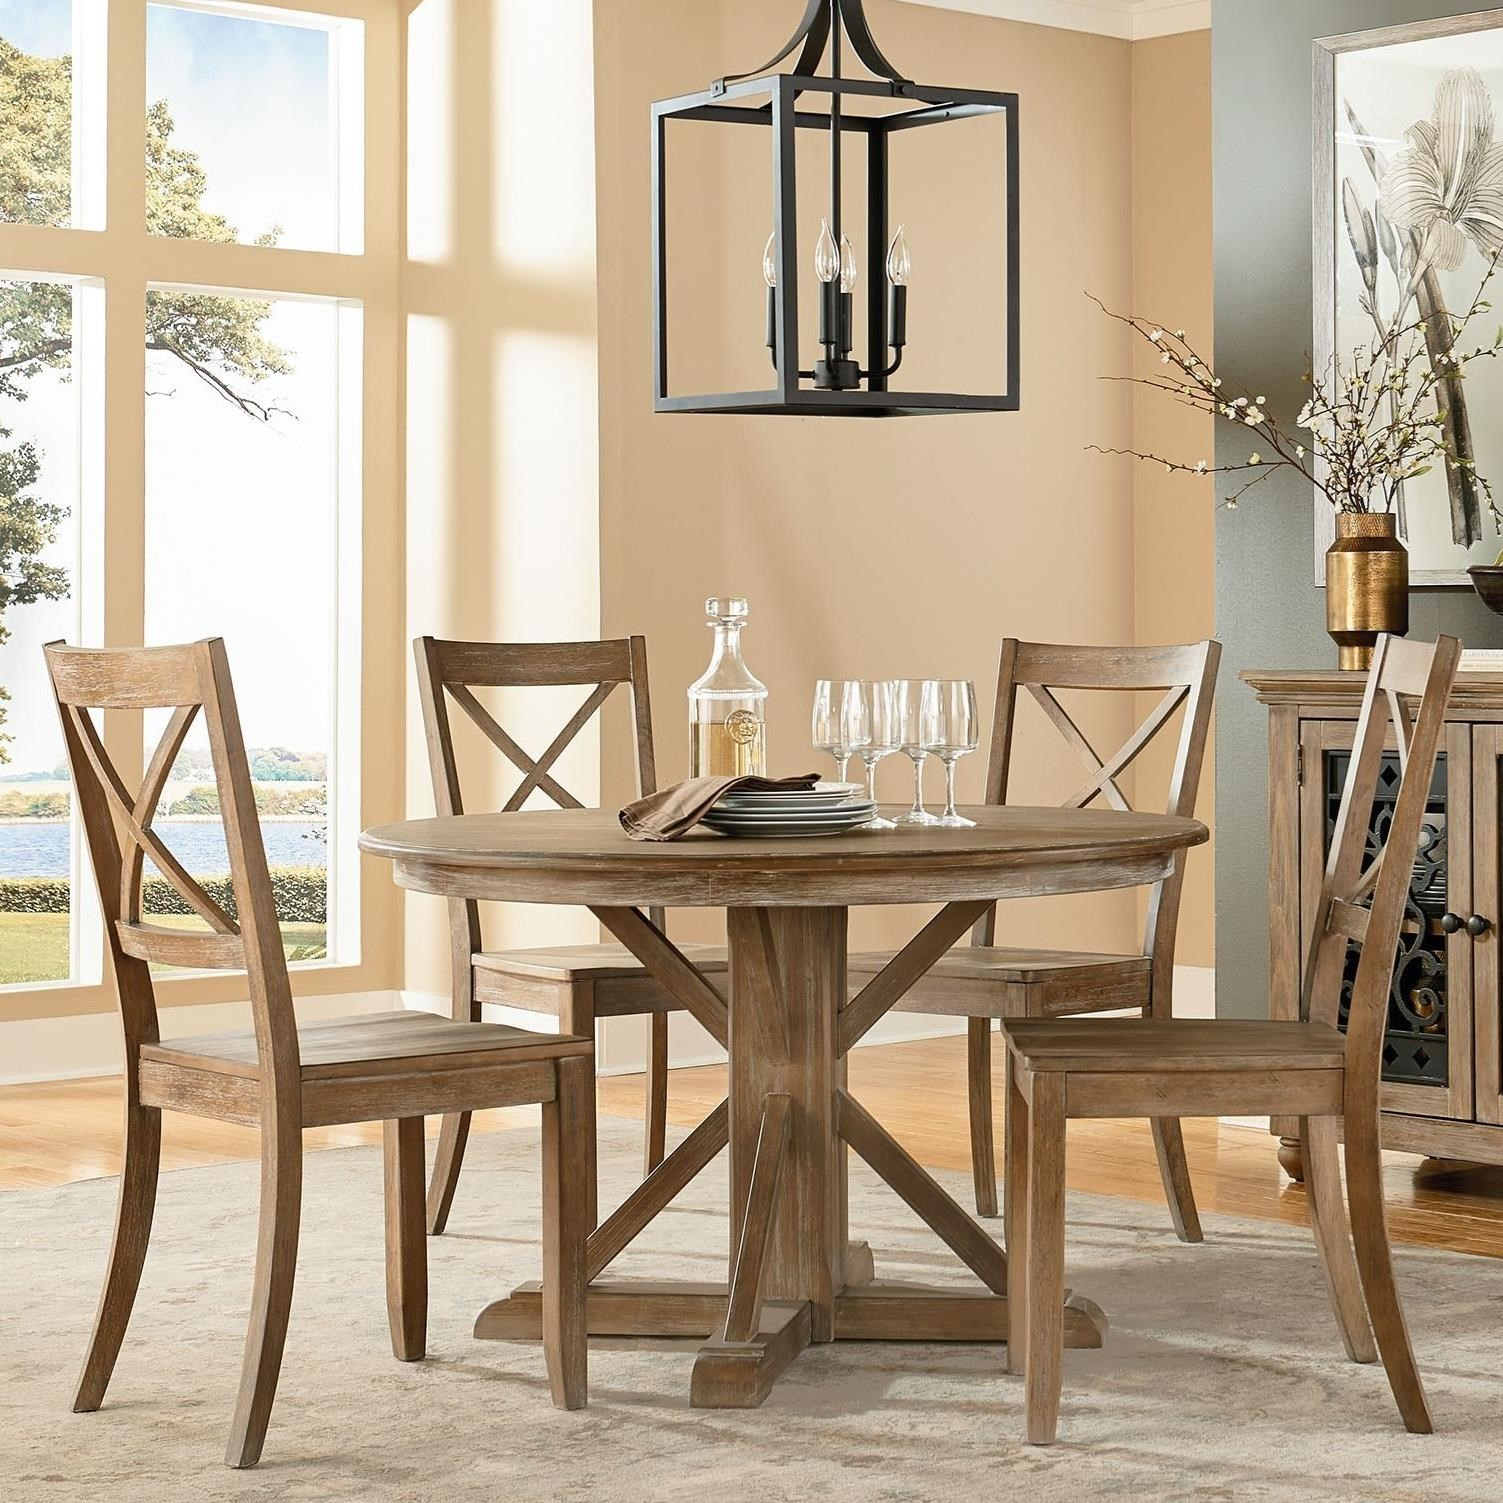 Standard Furniture Savannah Court Traditional Round Table And Chair Set